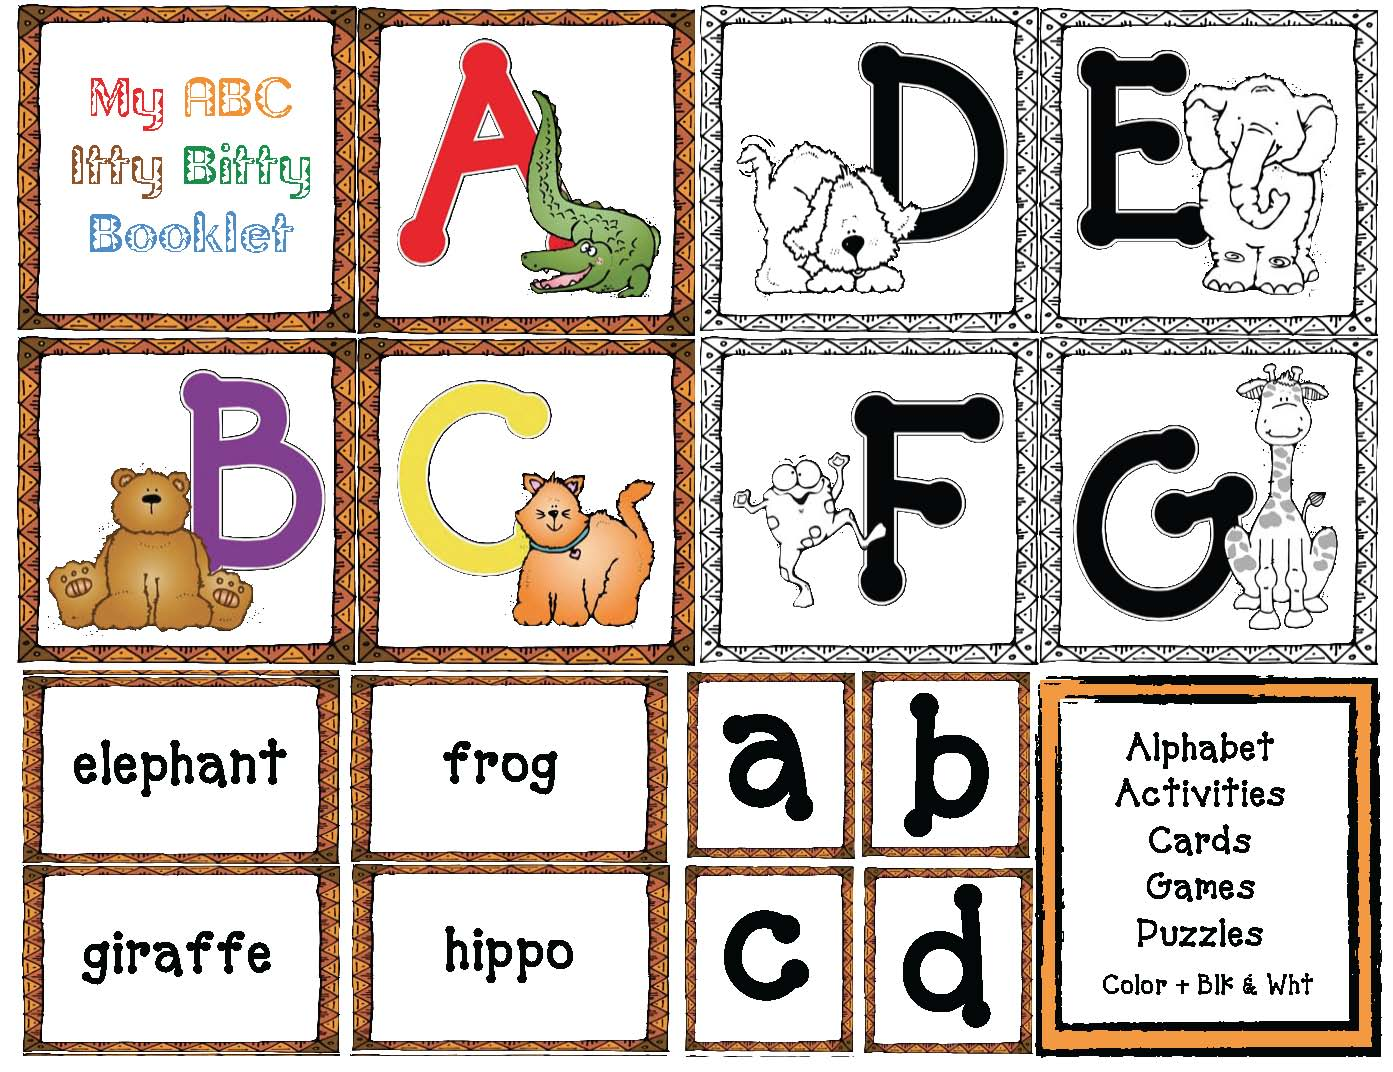 alphabet activities, alphabet games, alphabet worksheets, common core state standards for kindergarten and first grade, animal activities, animal games, animal lessons, zoo activities